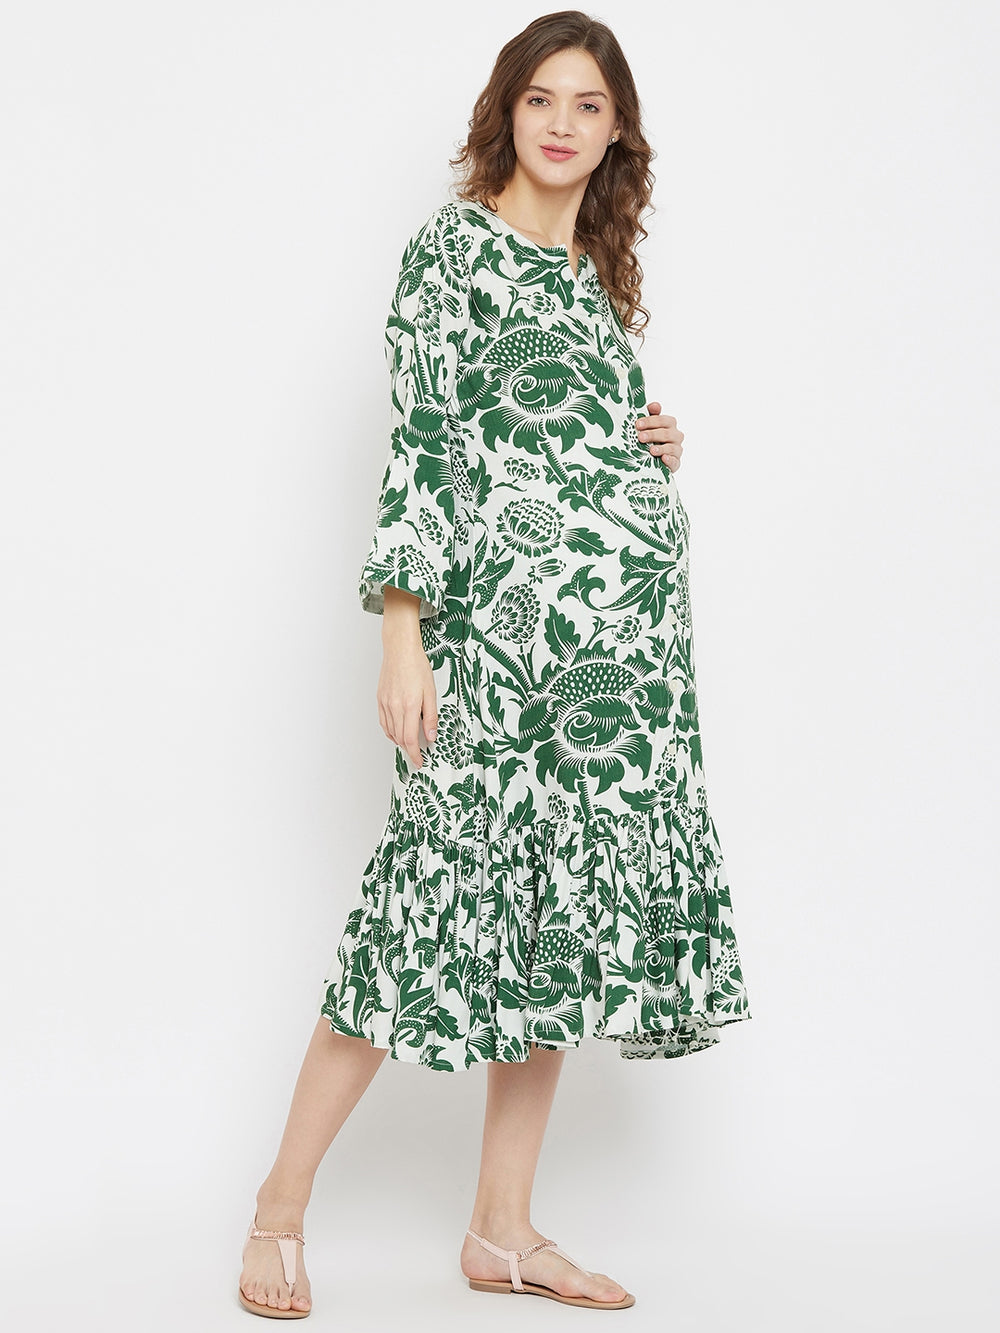 Botanical Emerald Printed Midi Length Maternity and Feeding Dress with Ruffles